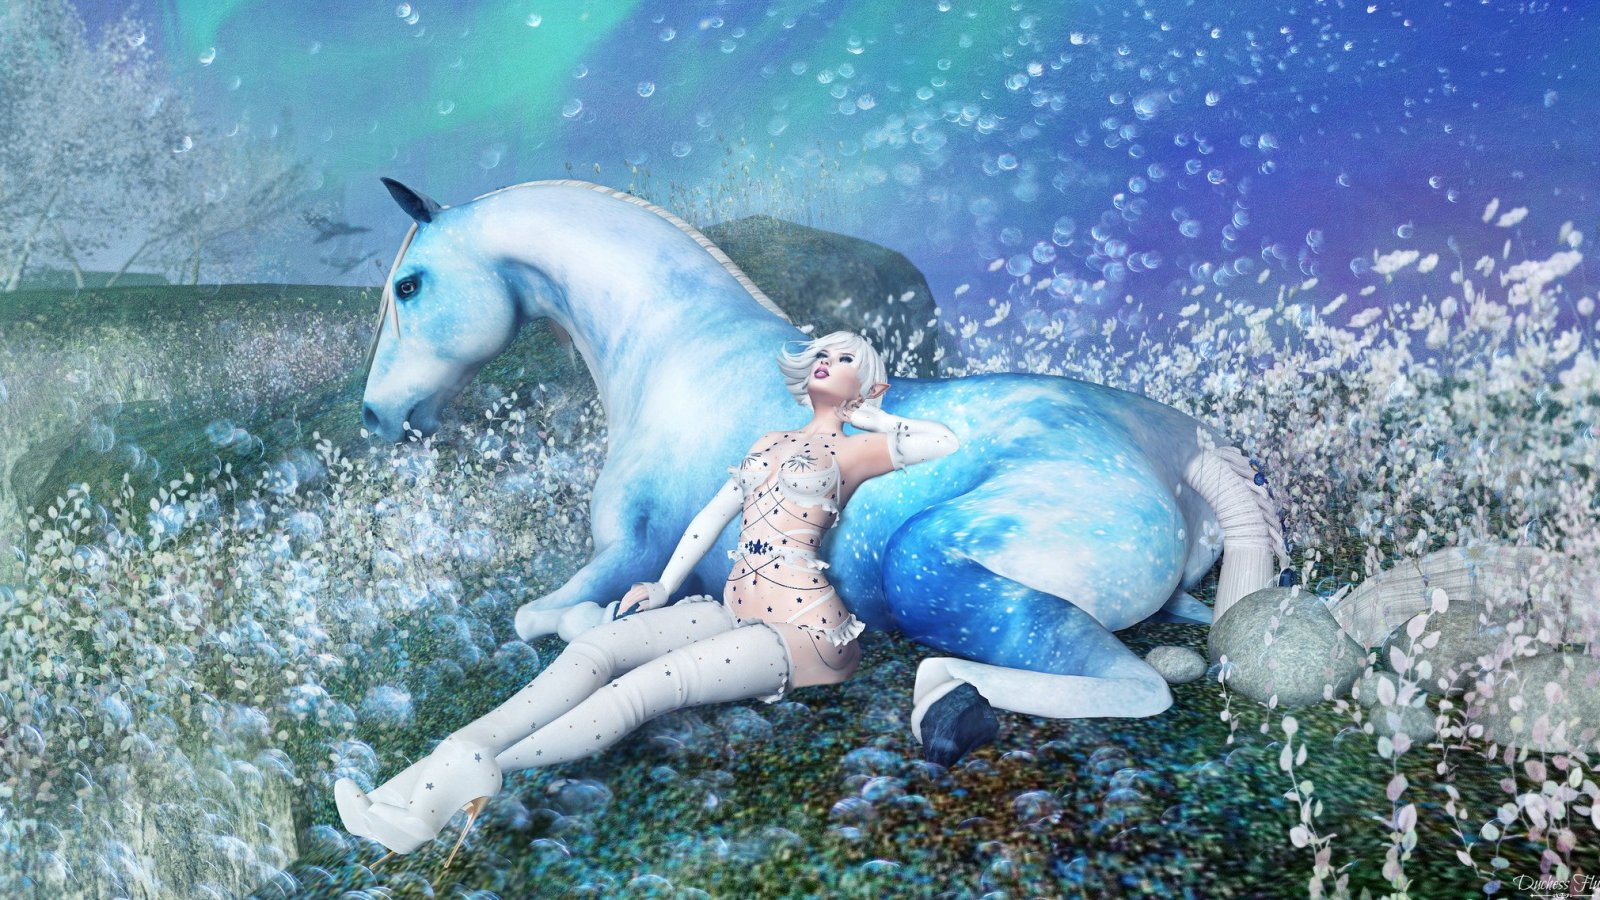 Starry Night and the Celestial Queen